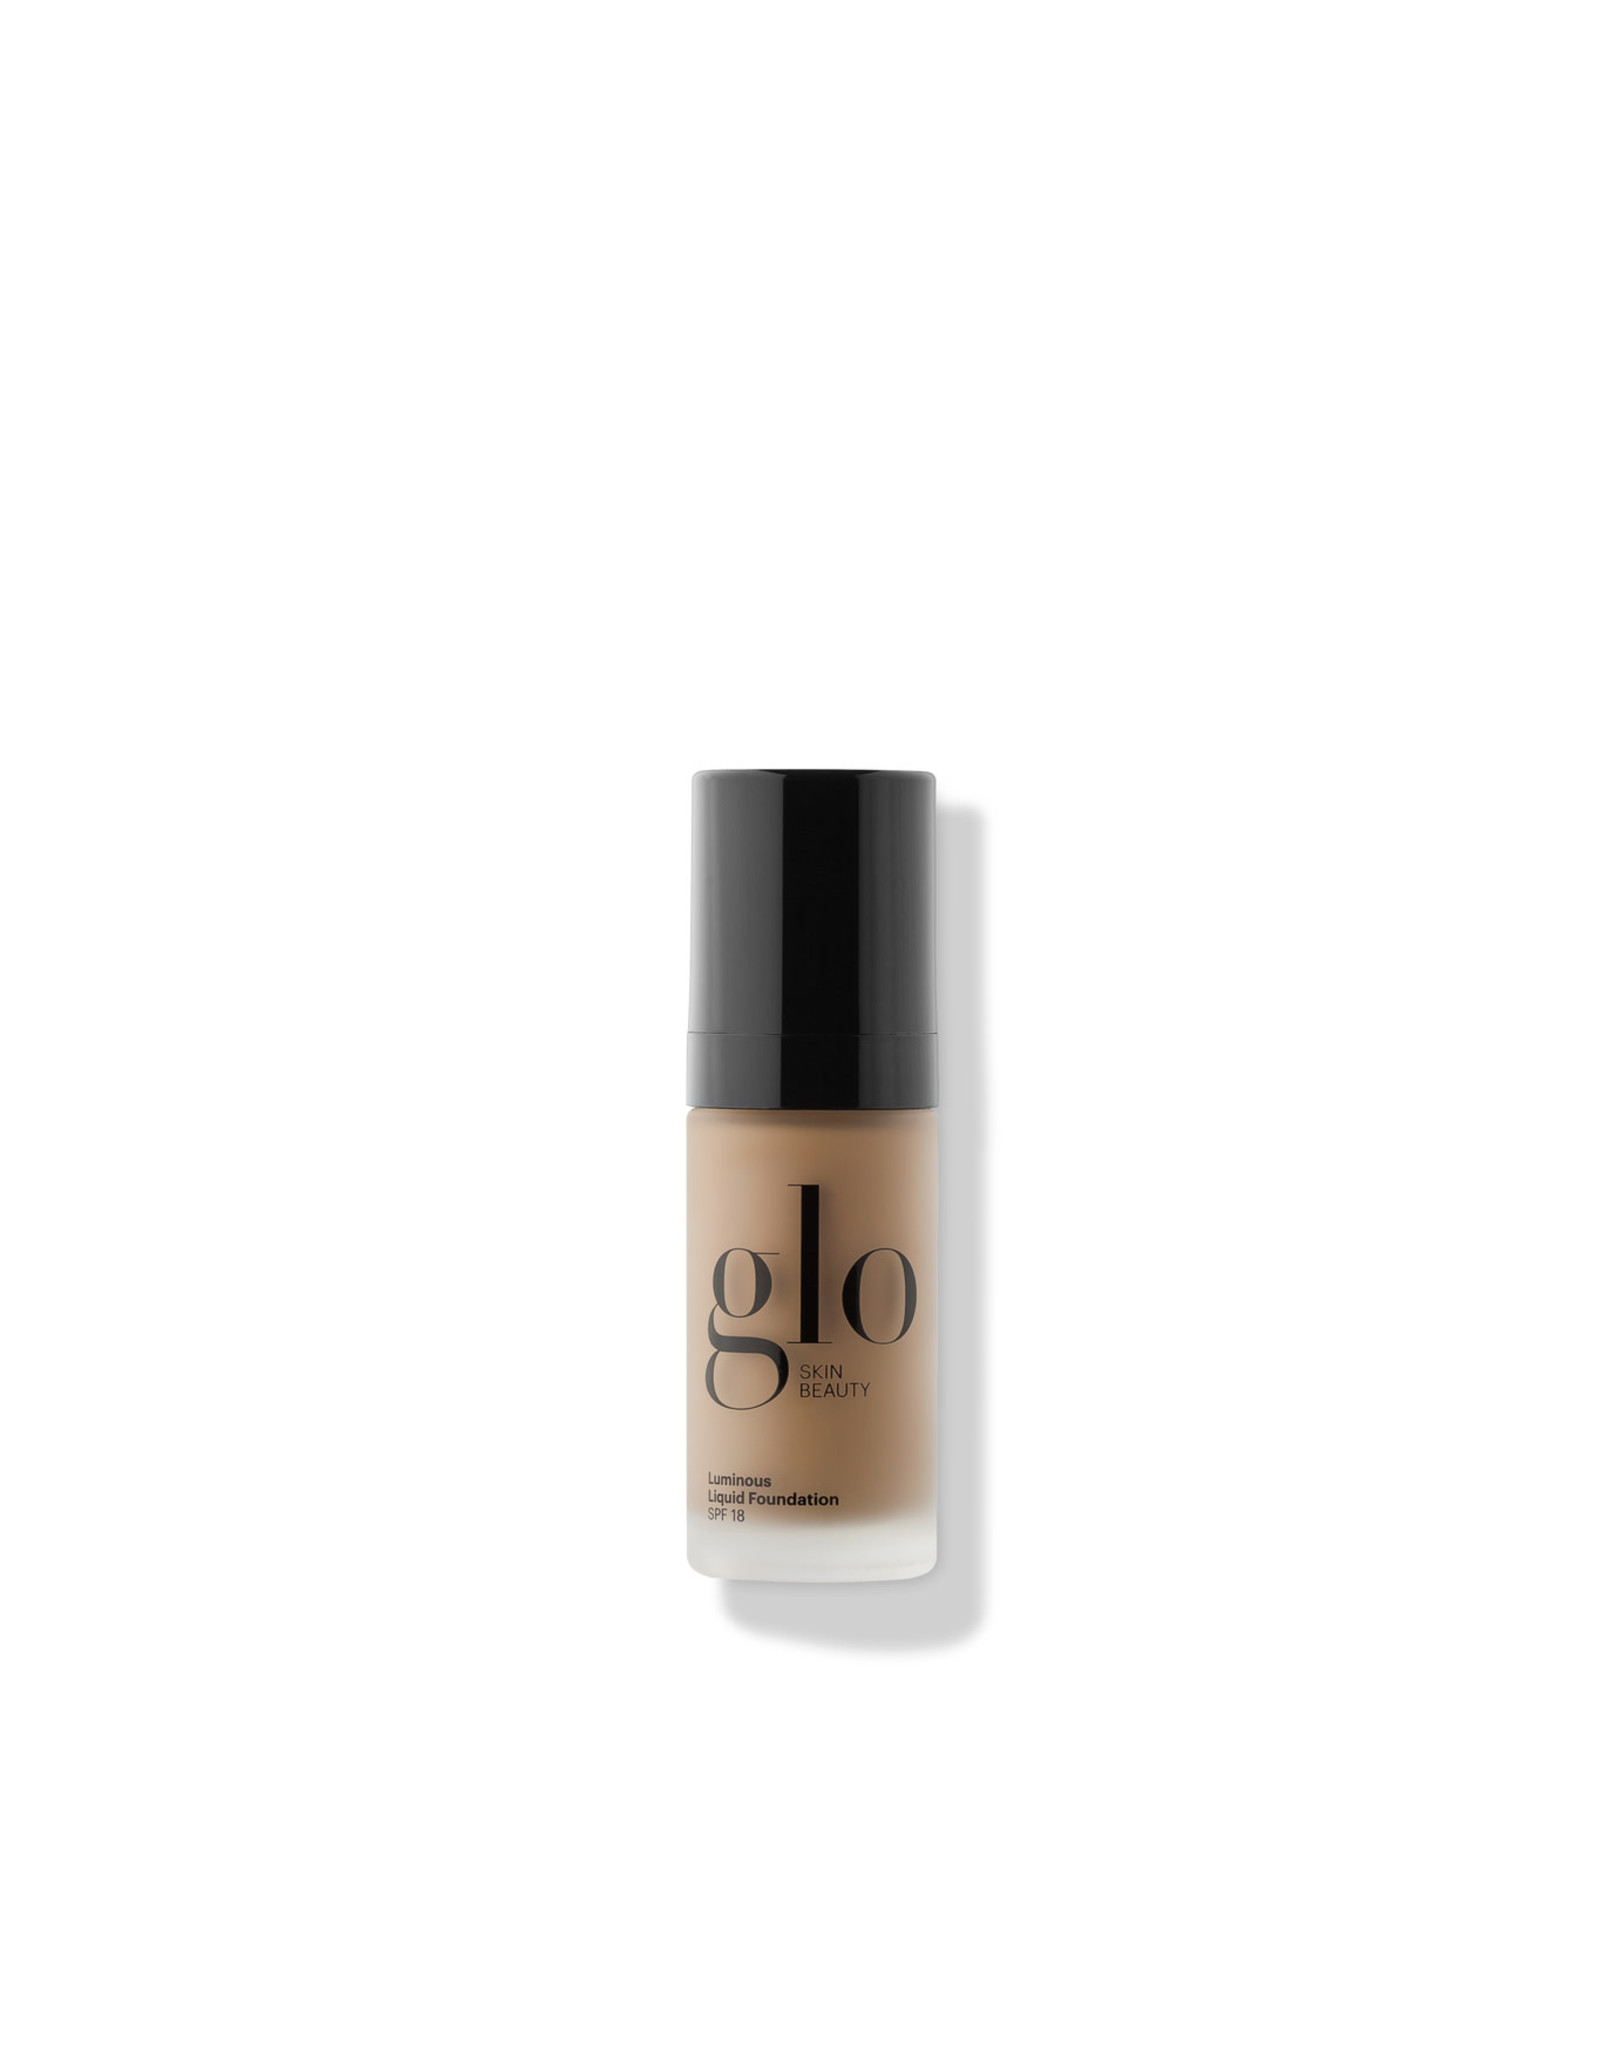 Glo Skin Beauty Luminous Liquid Foundation SPF 18